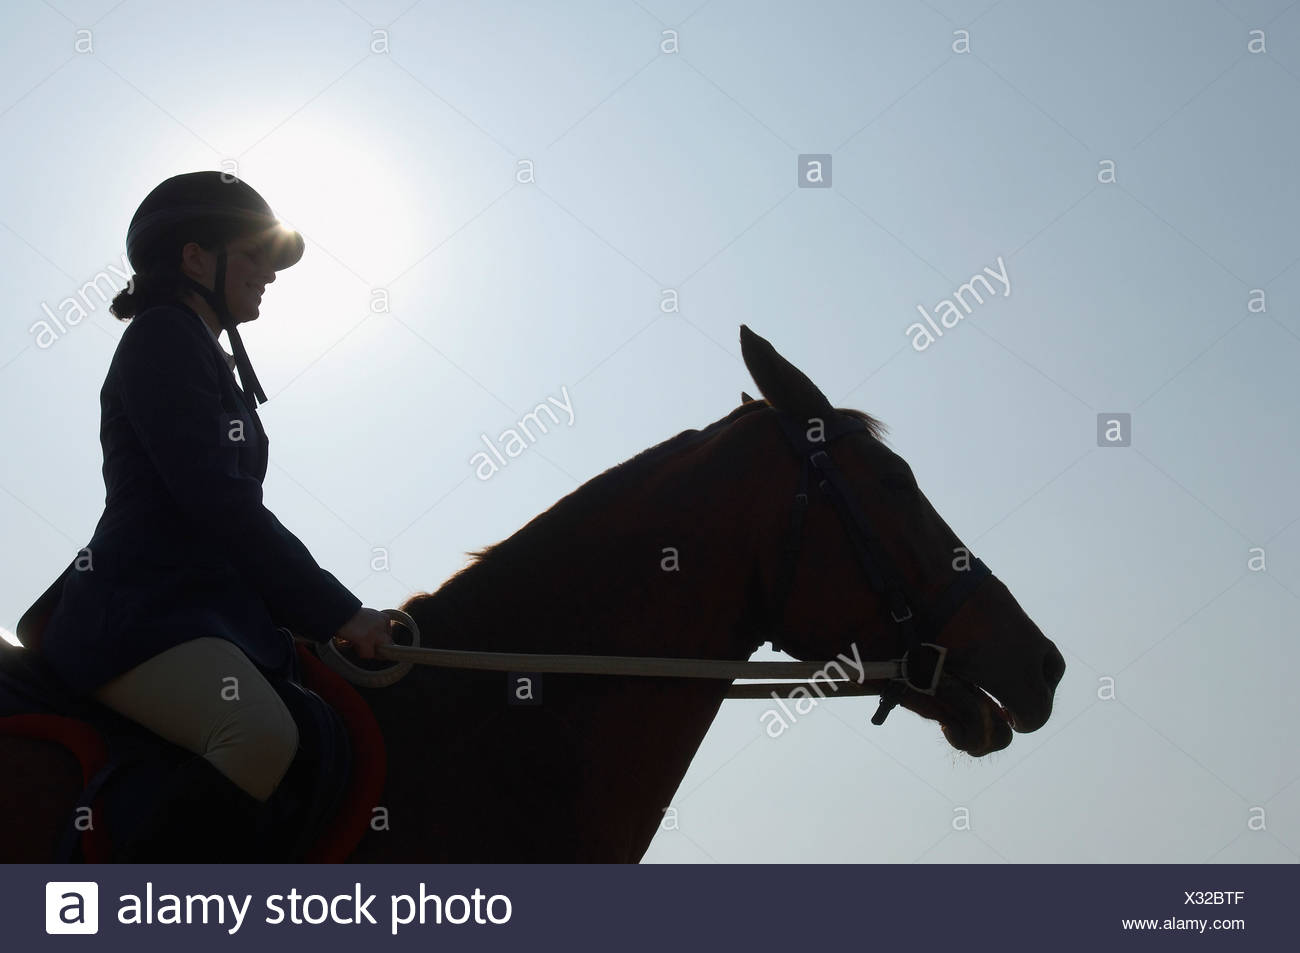 Silhouette of a female jockey riding a horse - Stock Image